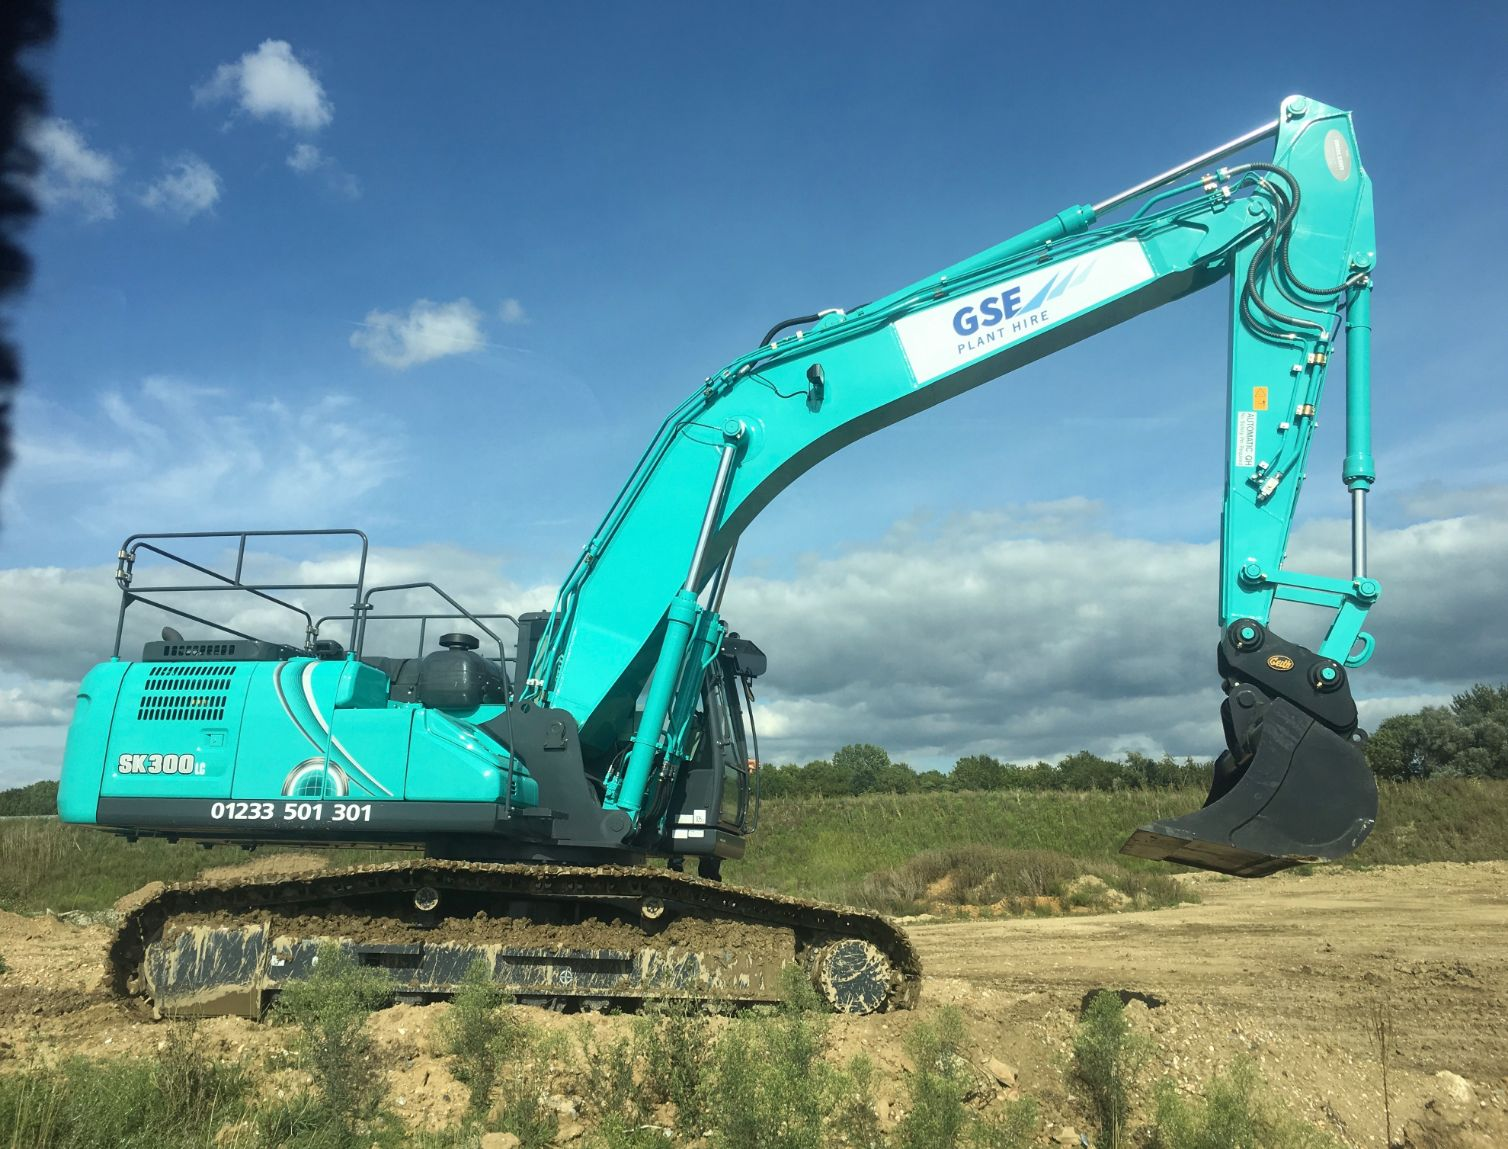 Find out more about our largest excavator, the 30T Kobelco